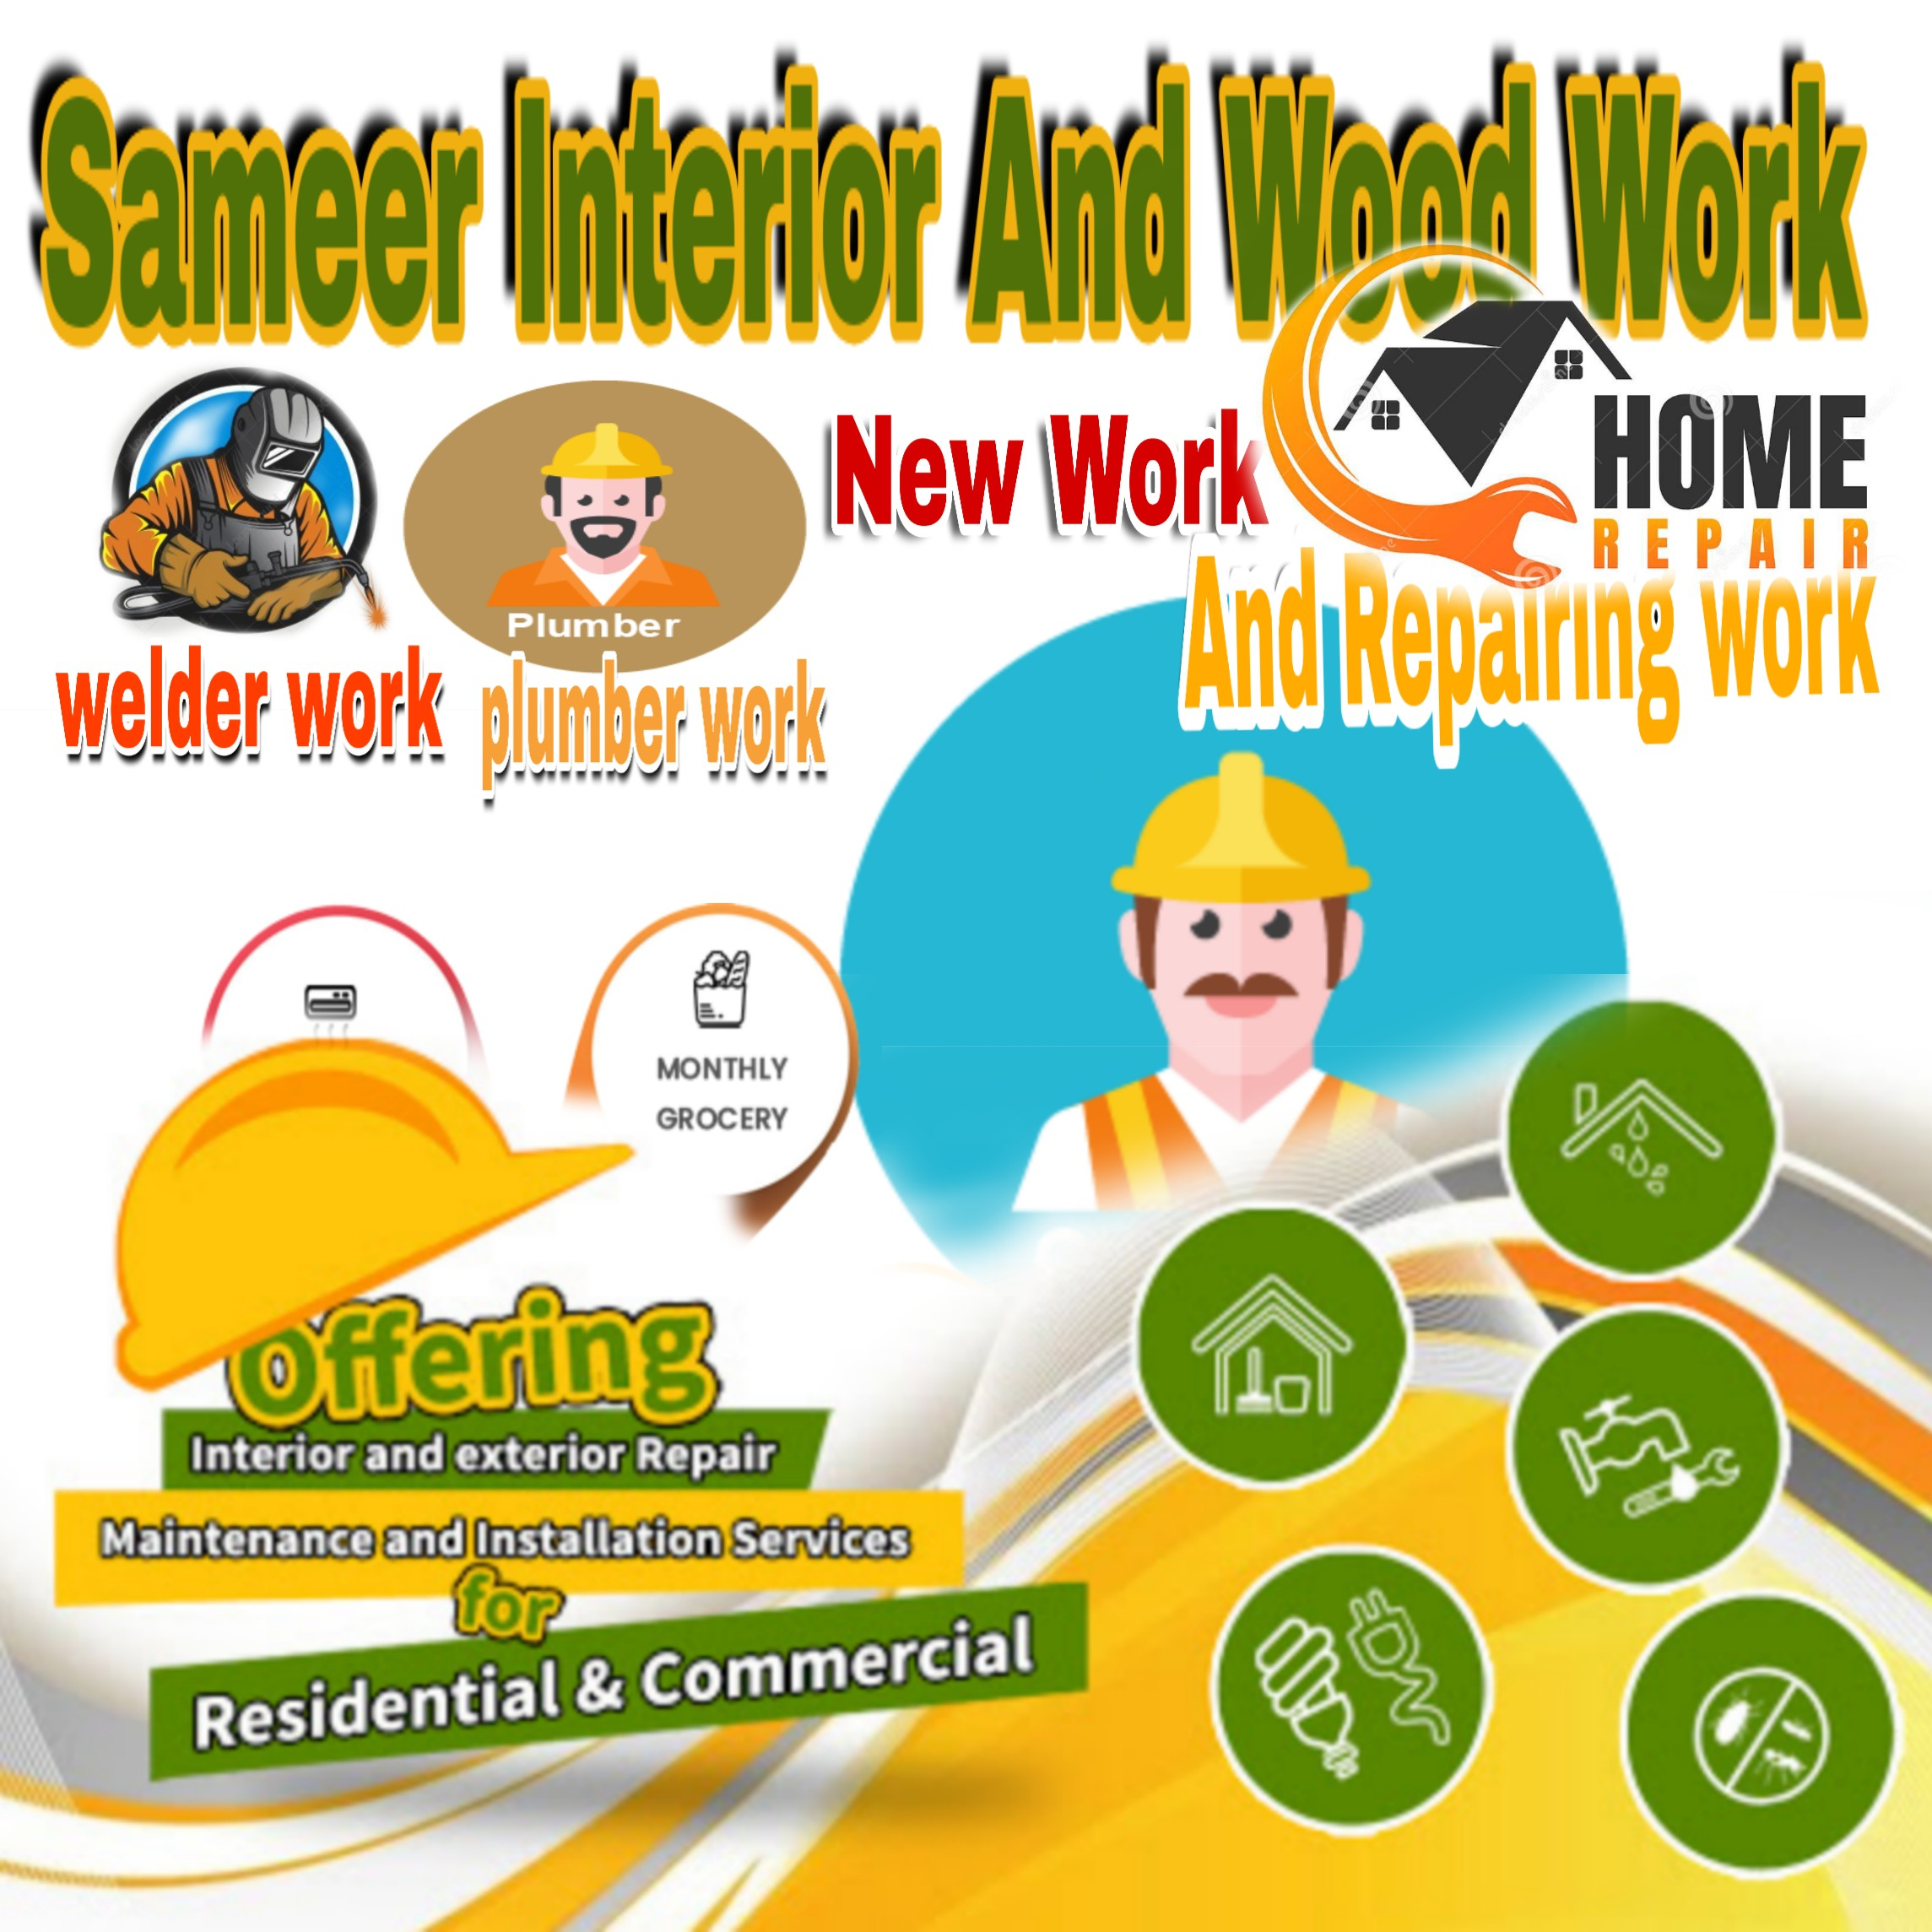 Sameer Interior And Wood Work in Gautam Buddha Nagar